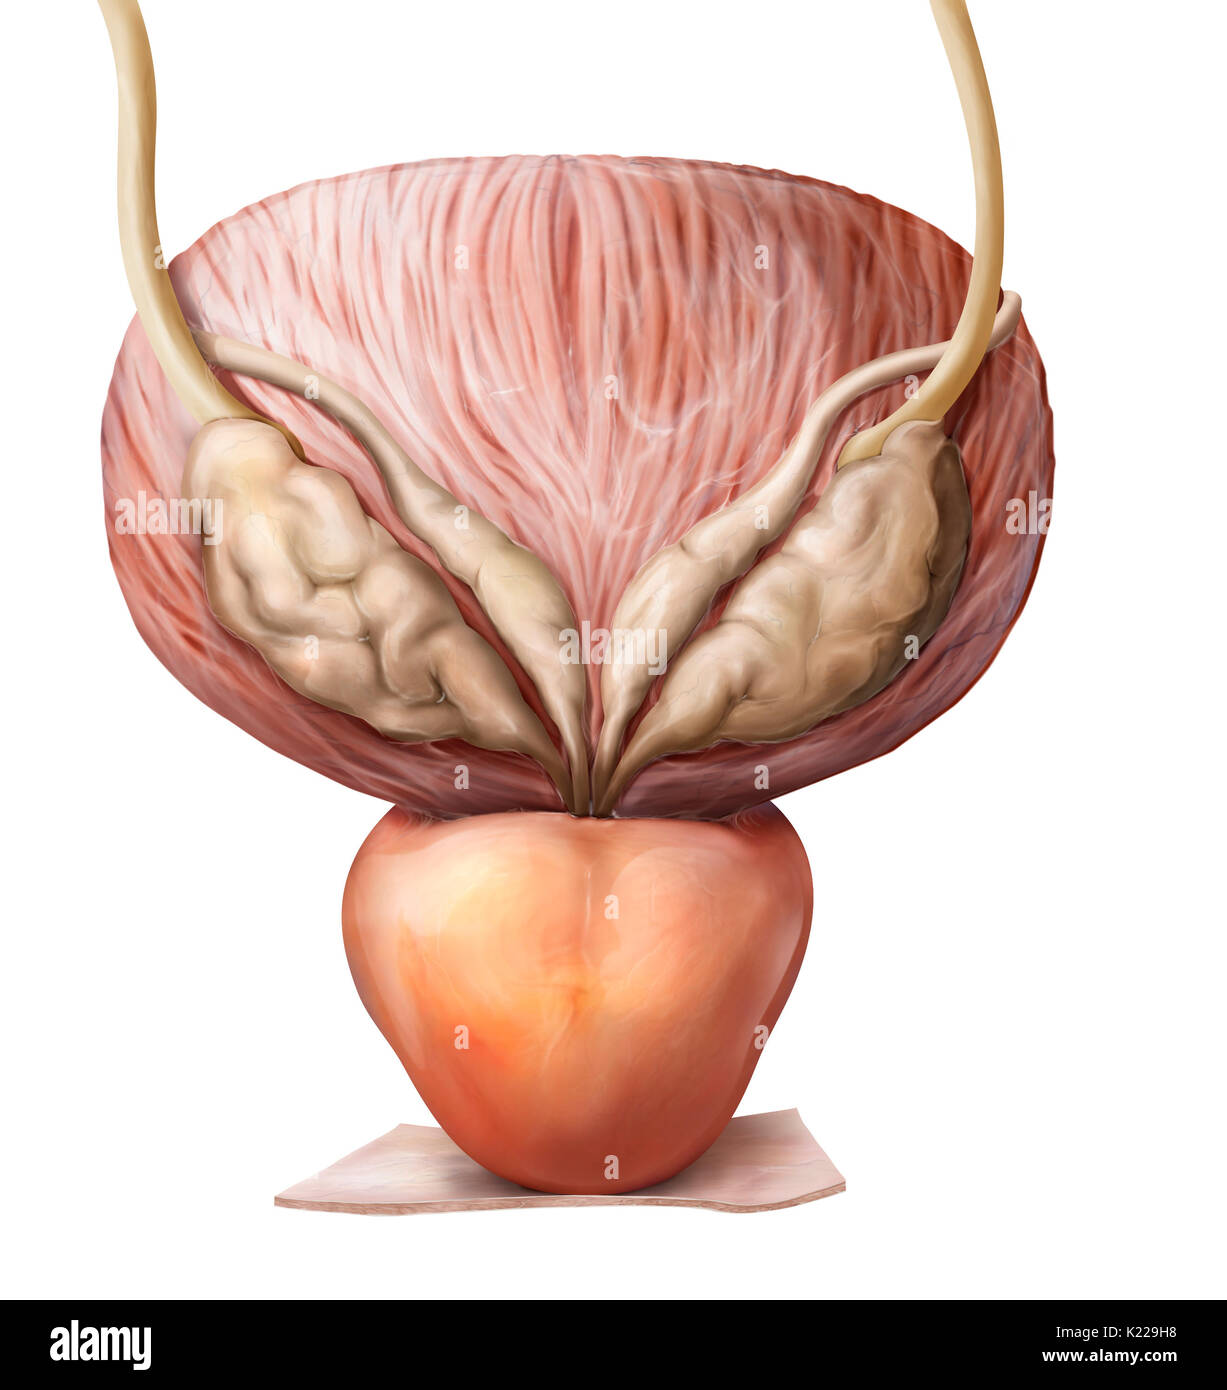 This image shows the urinary bladder, the ureter and the prostate. - Stock Image